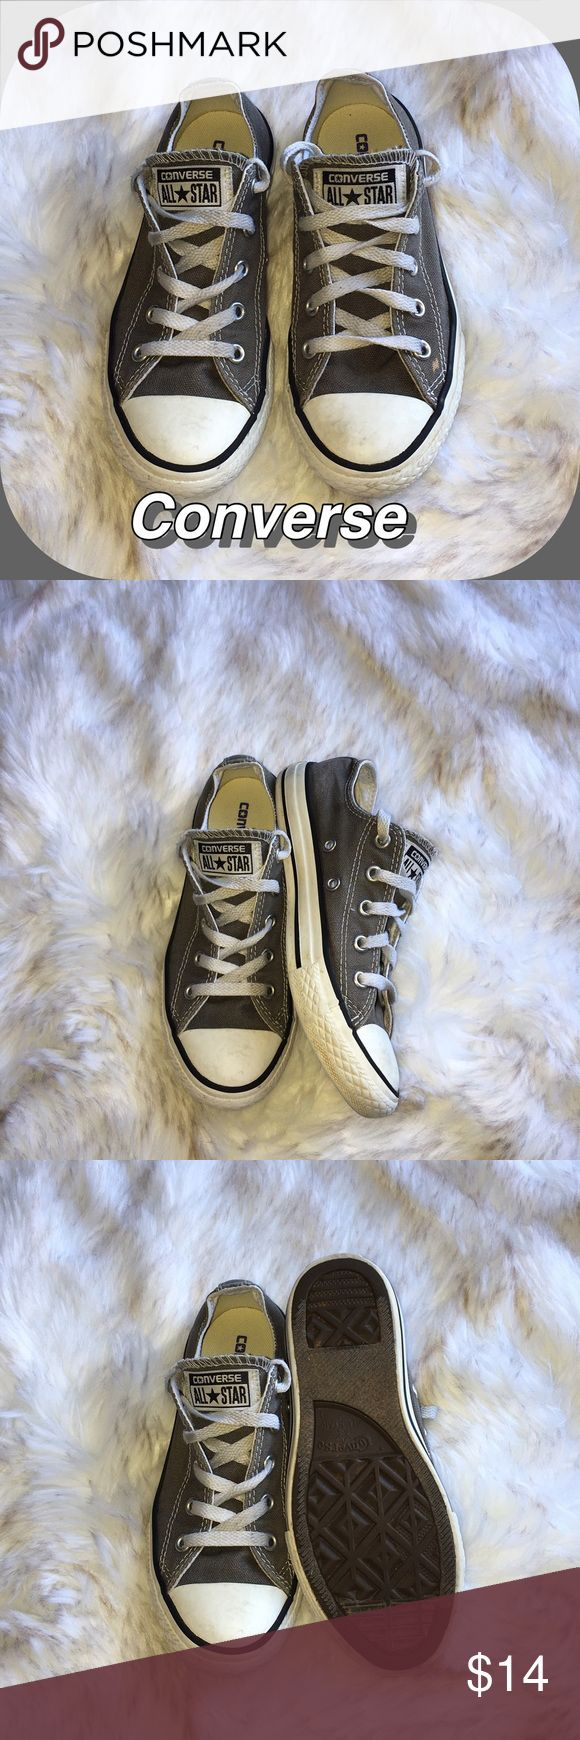 Kids Converse Sneakers Kids Converse Gray Sneakers. Gently Used / Good Condition 🚫No Pay Pal 🚫No Trades 🚫 Converse Shoes Sneakers